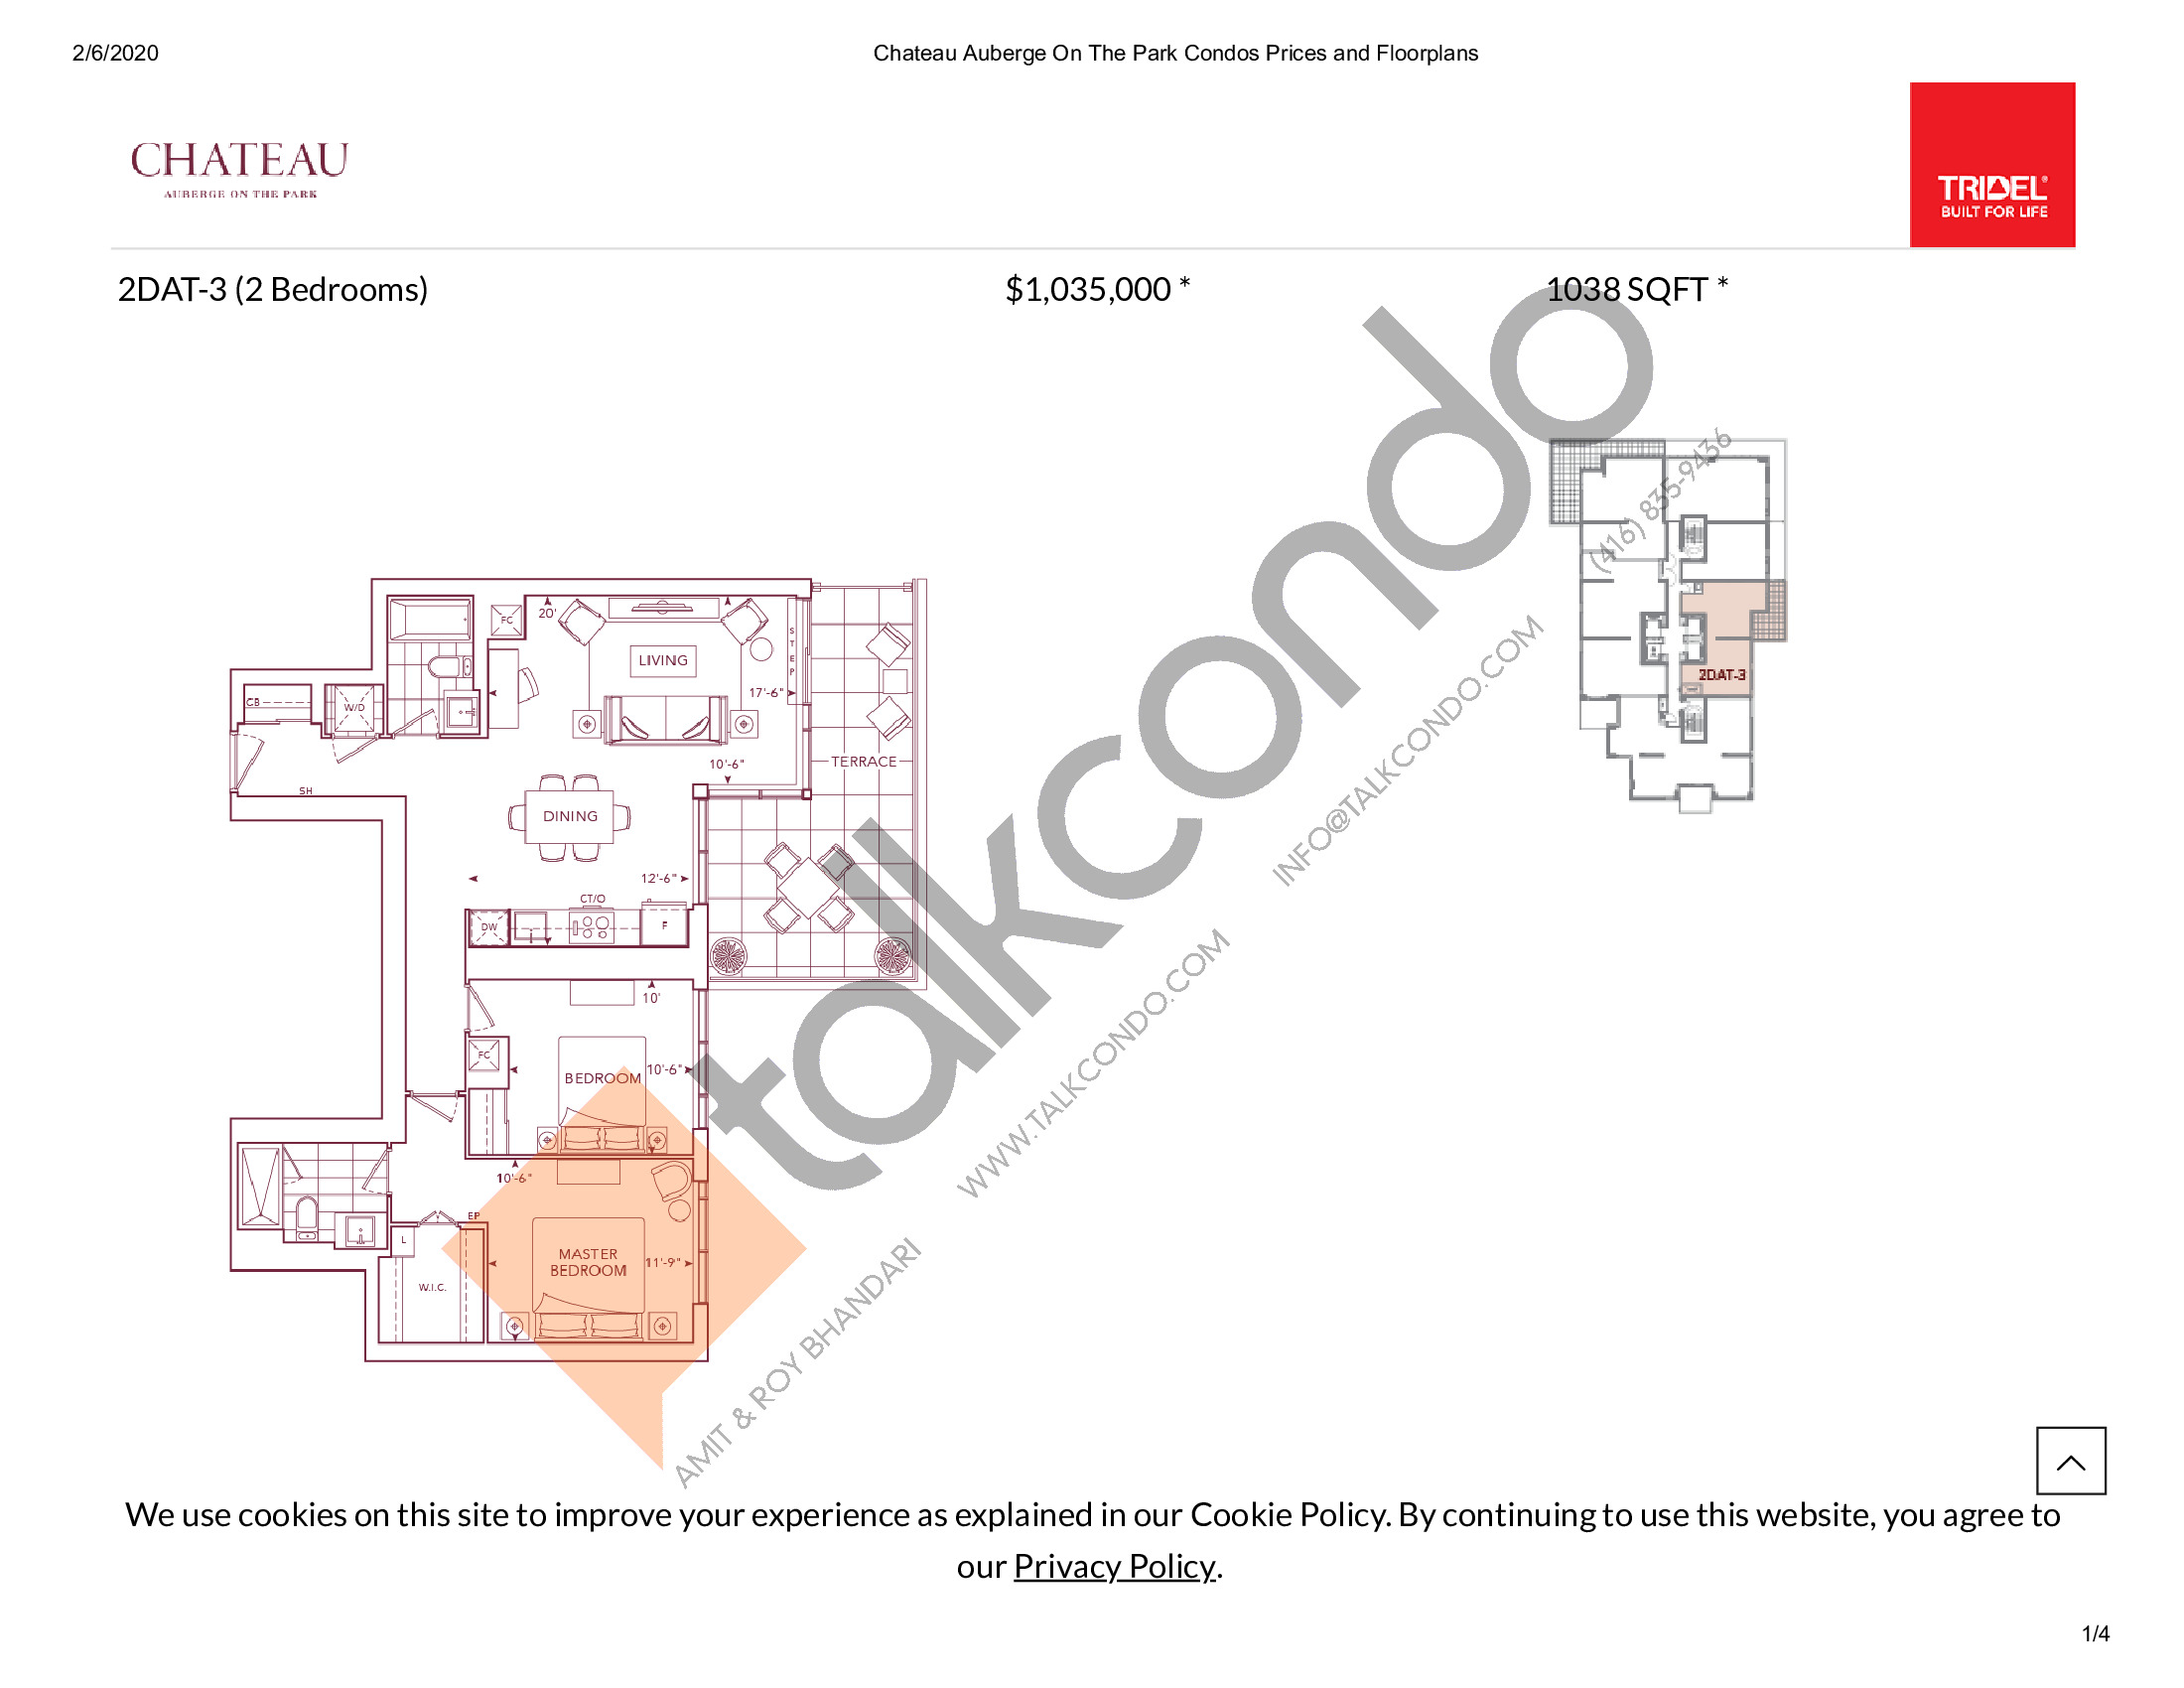 2DAT-3 Floor Plan at Chateau Auberge On The Park Condos - 1038 sq.ft